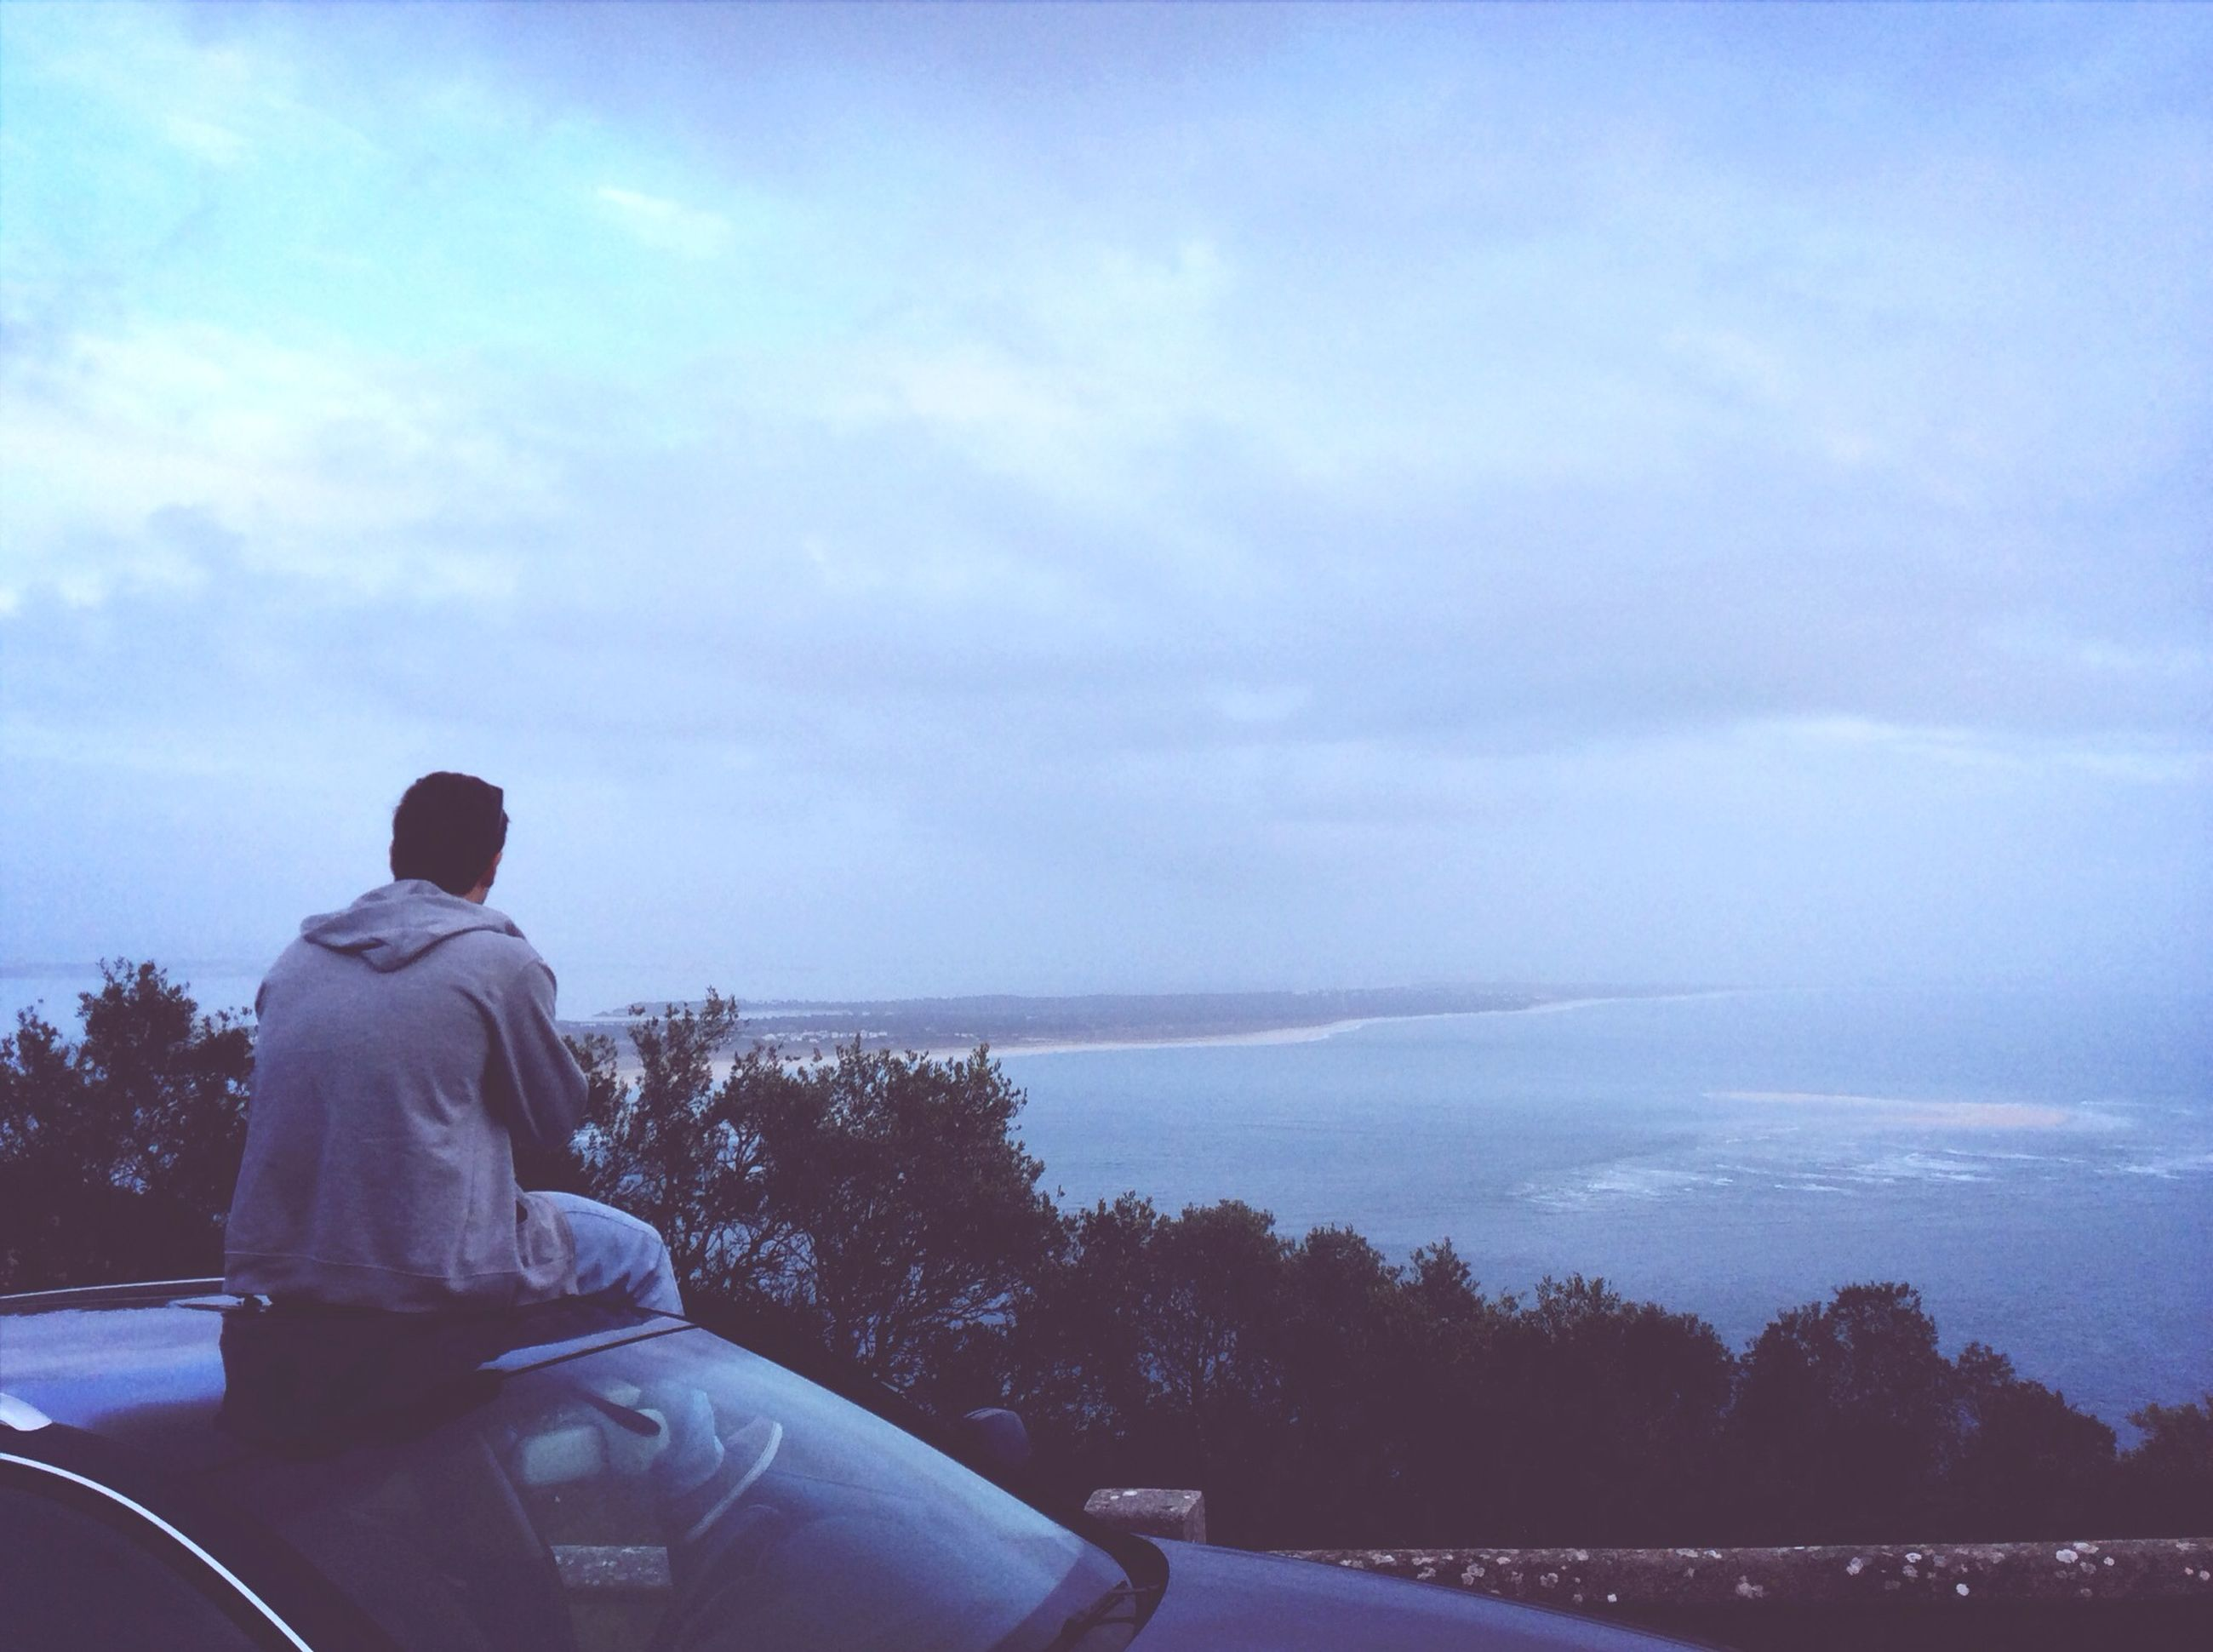 sky, rear view, lifestyles, water, cloud - sky, leisure activity, men, standing, sea, nature, looking at view, cloud, scenics, tranquility, sitting, beauty in nature, tranquil scene, relaxation